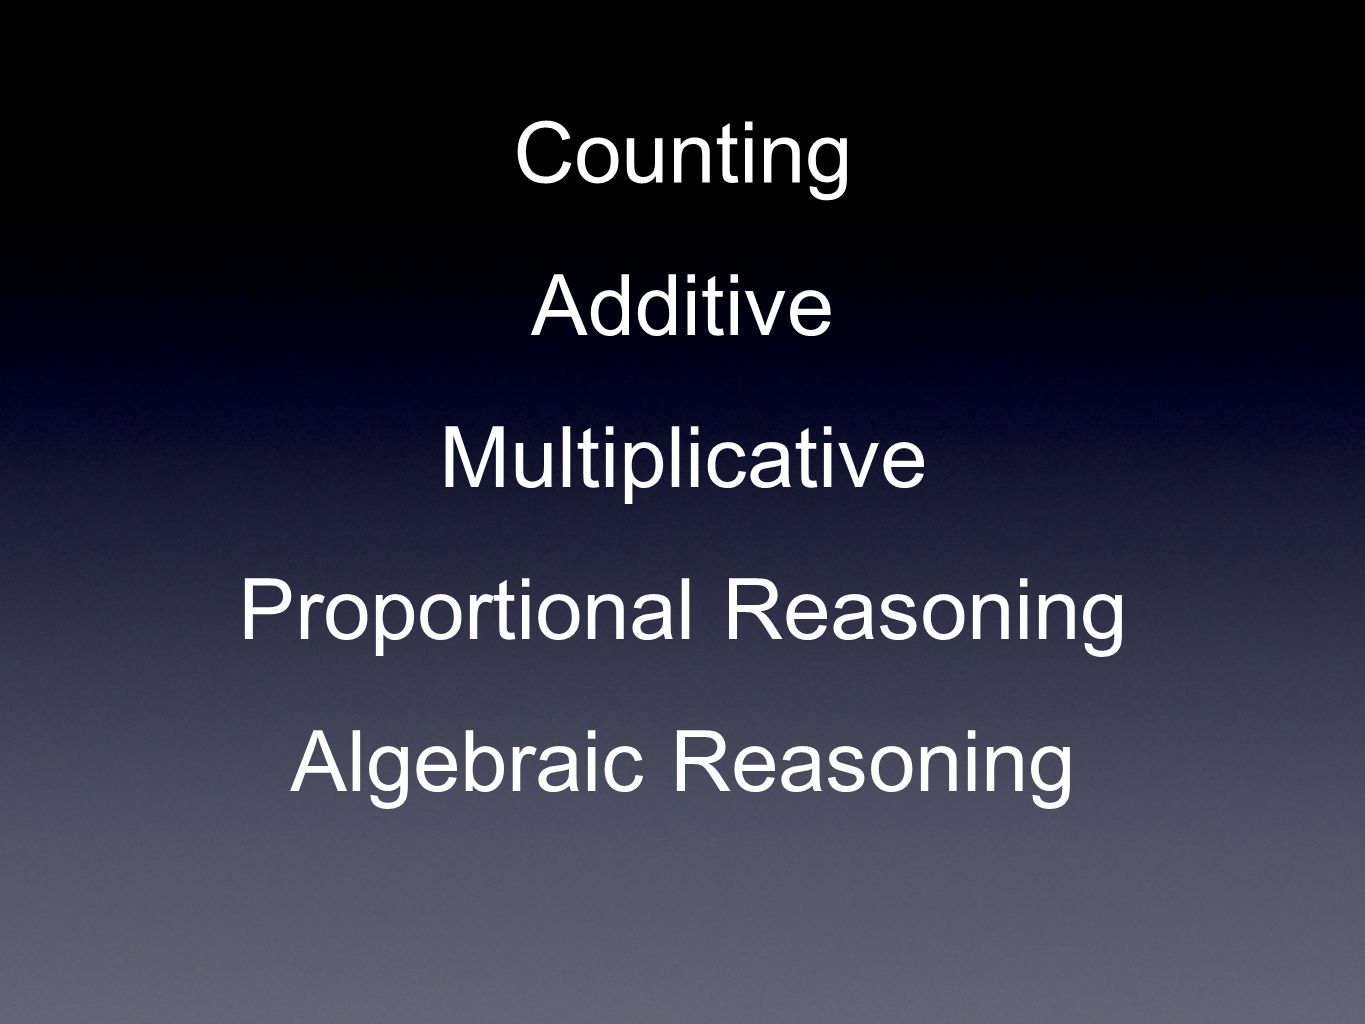 Counting Additive Multiplicative Proportional Reasoning Algebraic Reasoning